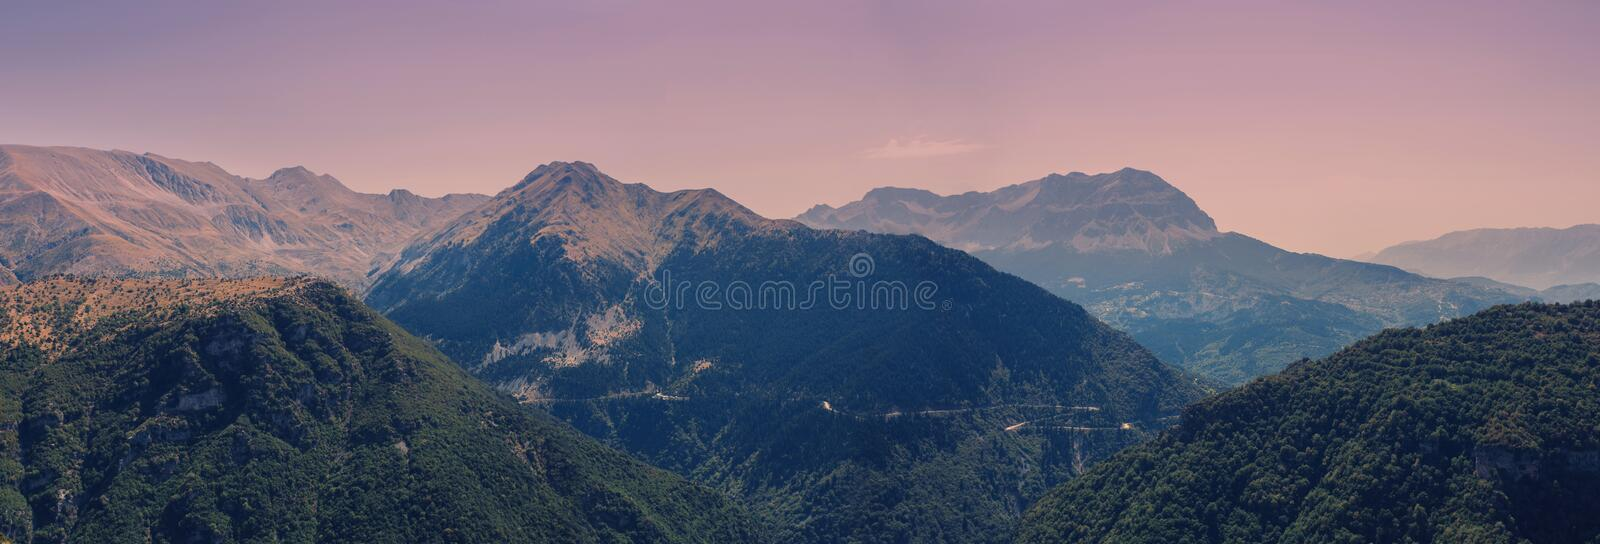 Banner of Panoramic view of mountain in National Park of Tzoumerka, Greece Epirus region. Mountain royalty free stock photography